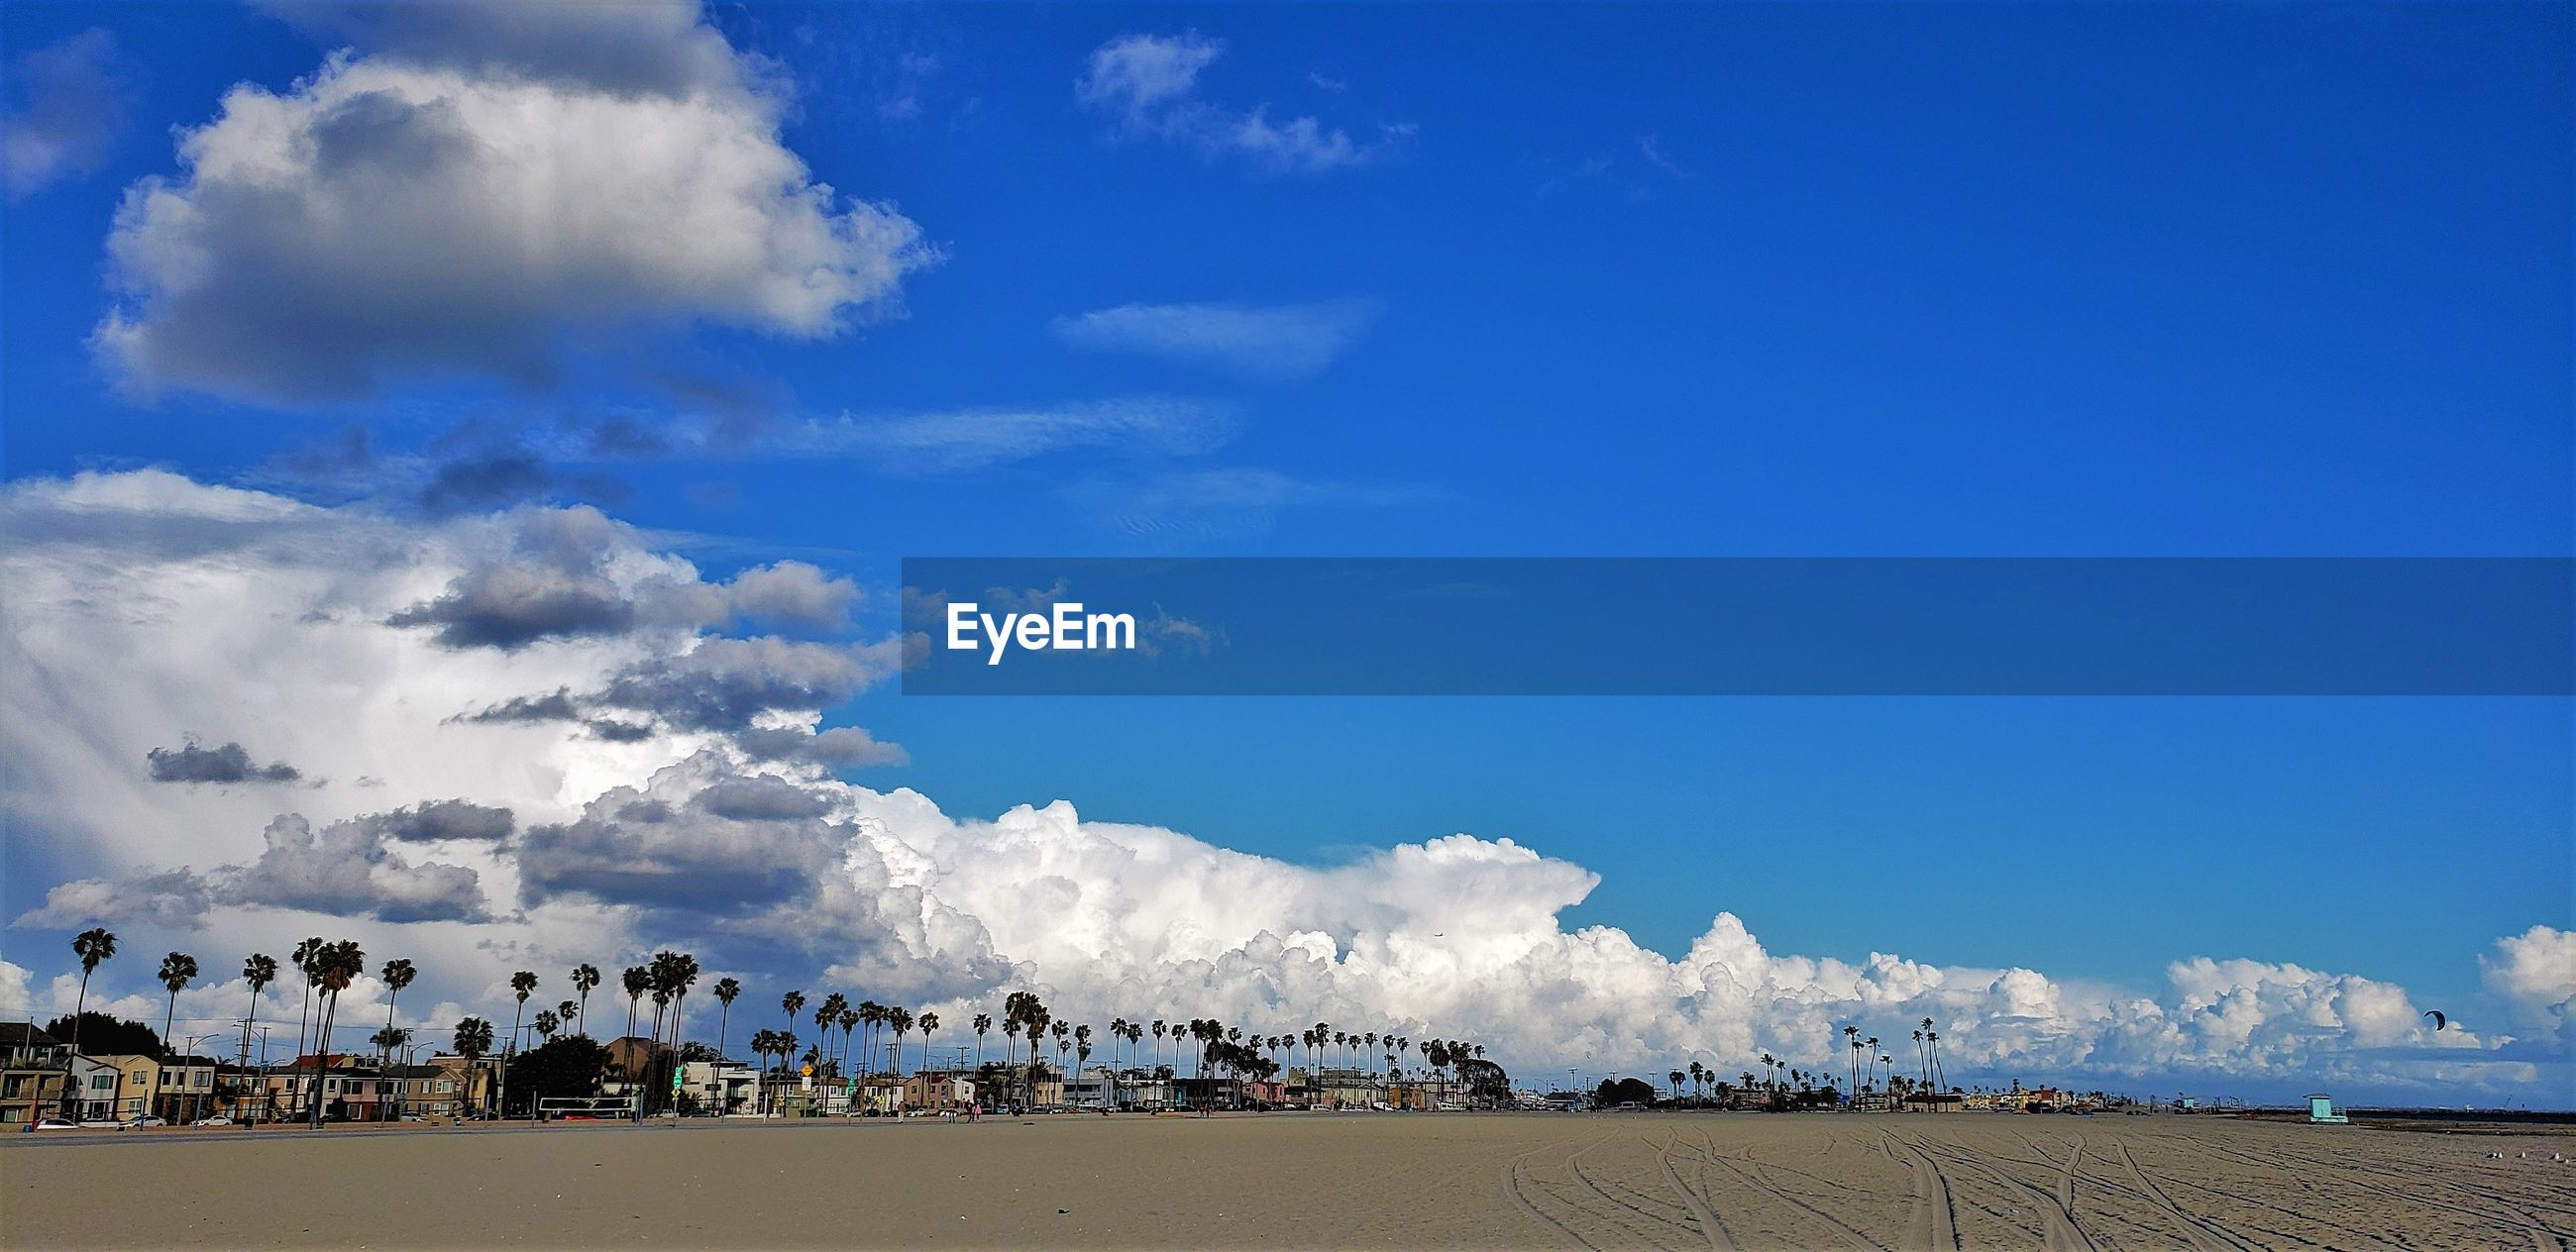 PANORAMIC SHOT OF PEOPLE ON BEACH AGAINST BLUE SKY